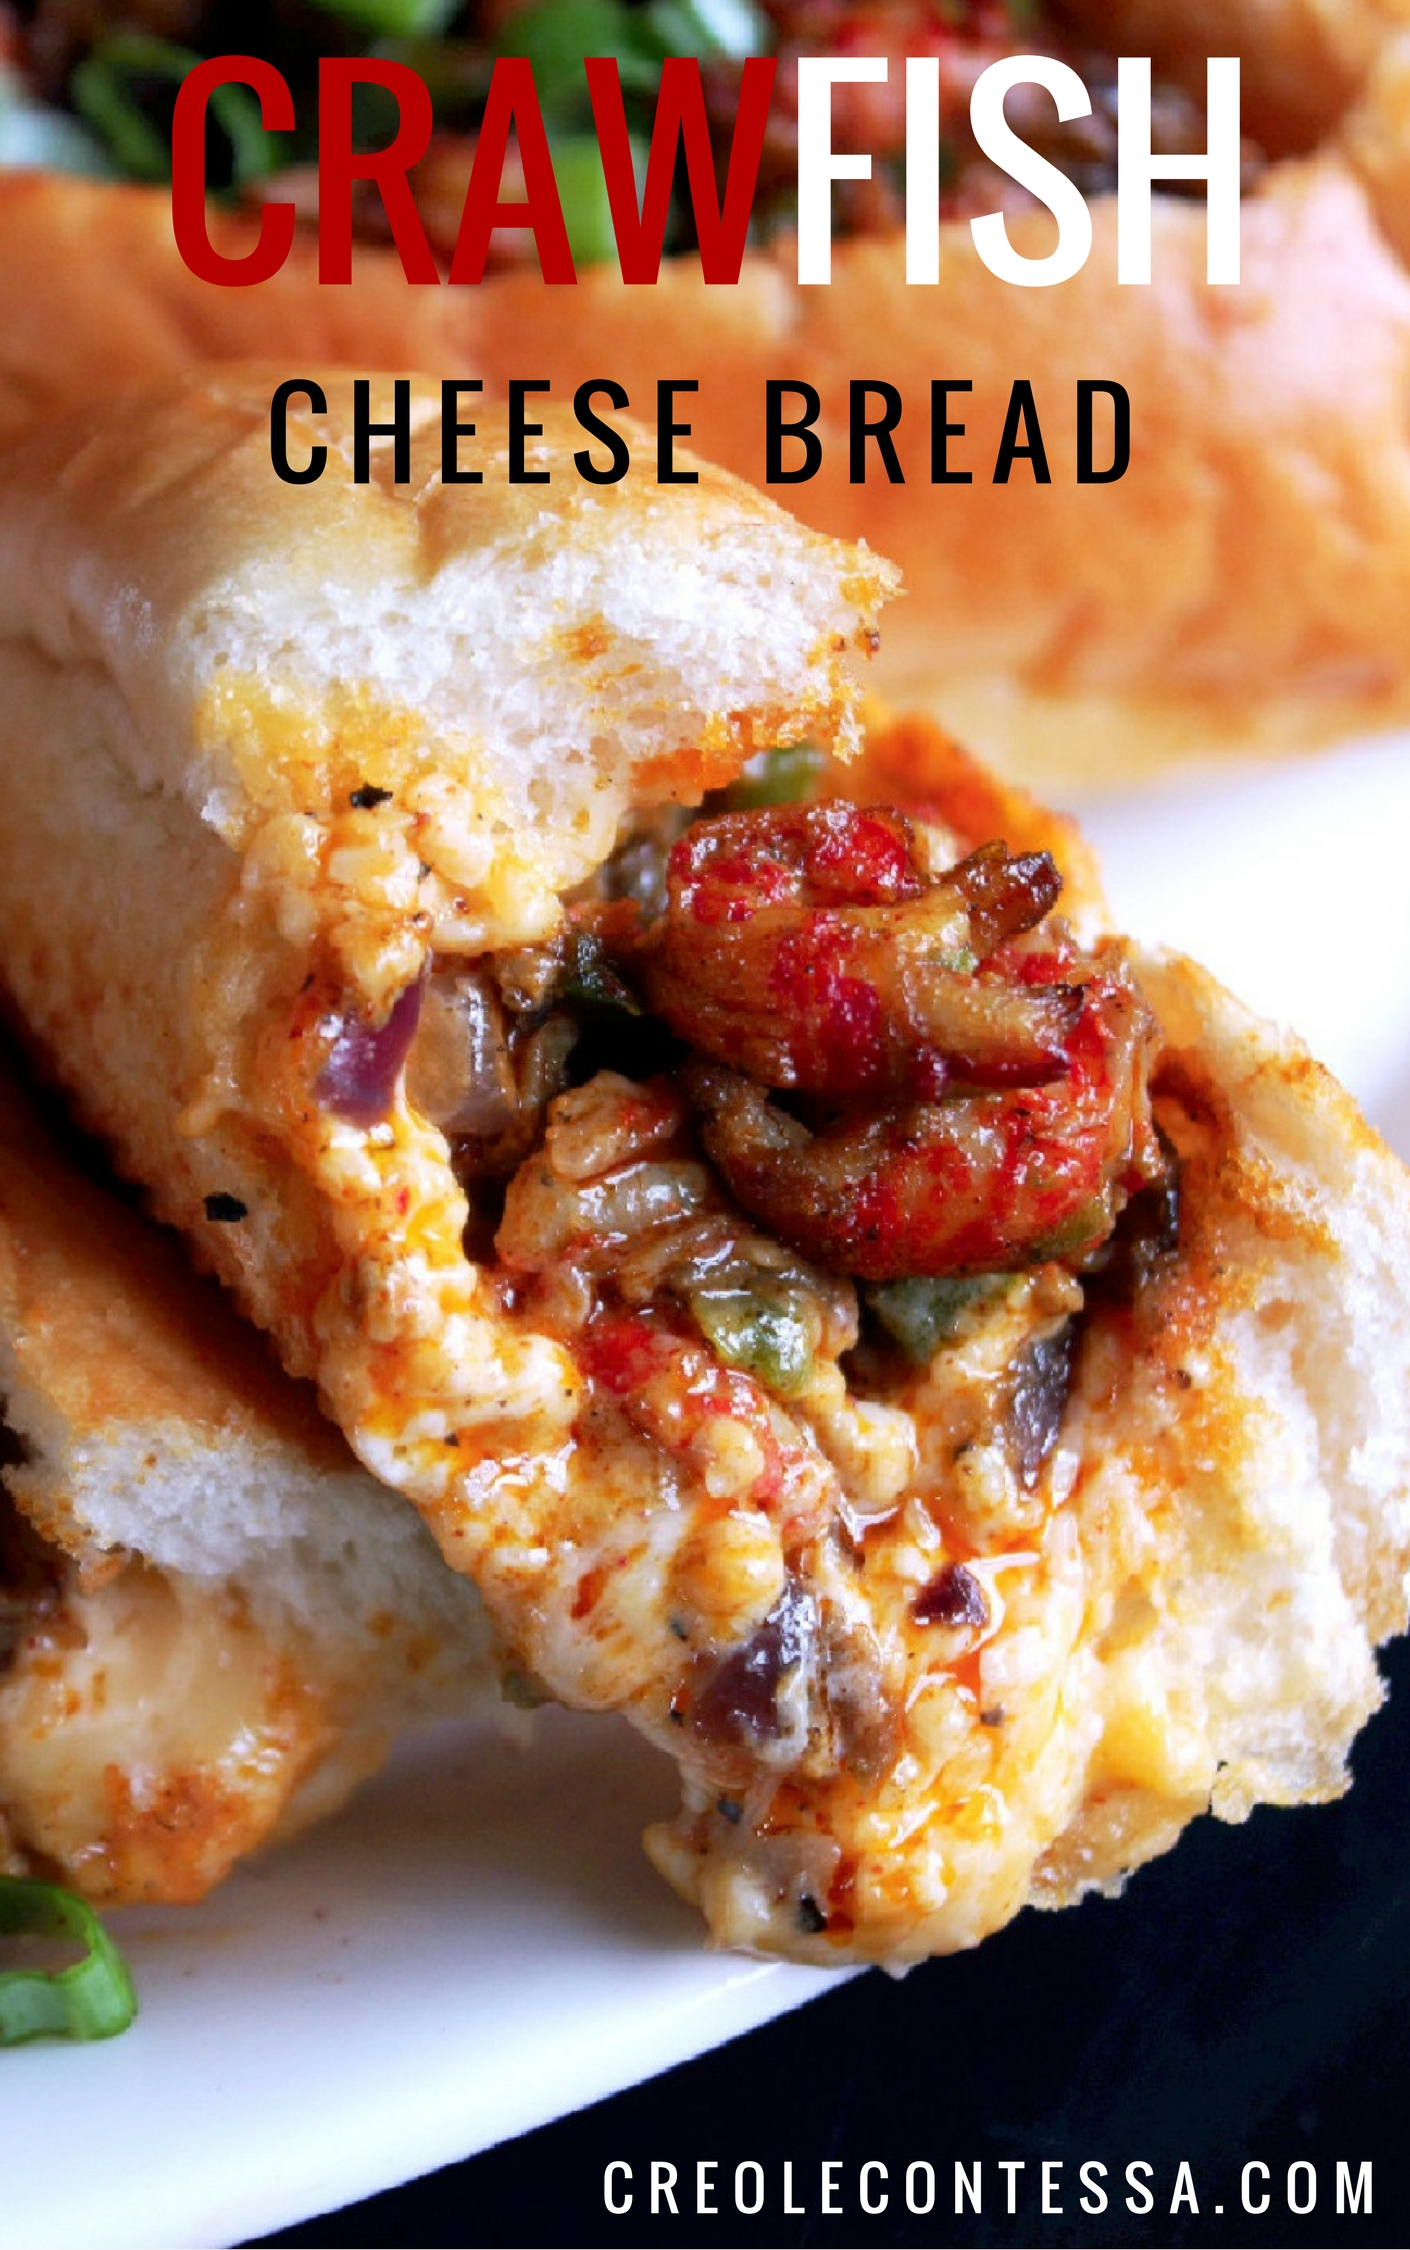 Crawfish Cheese Bread-Creole Contessa